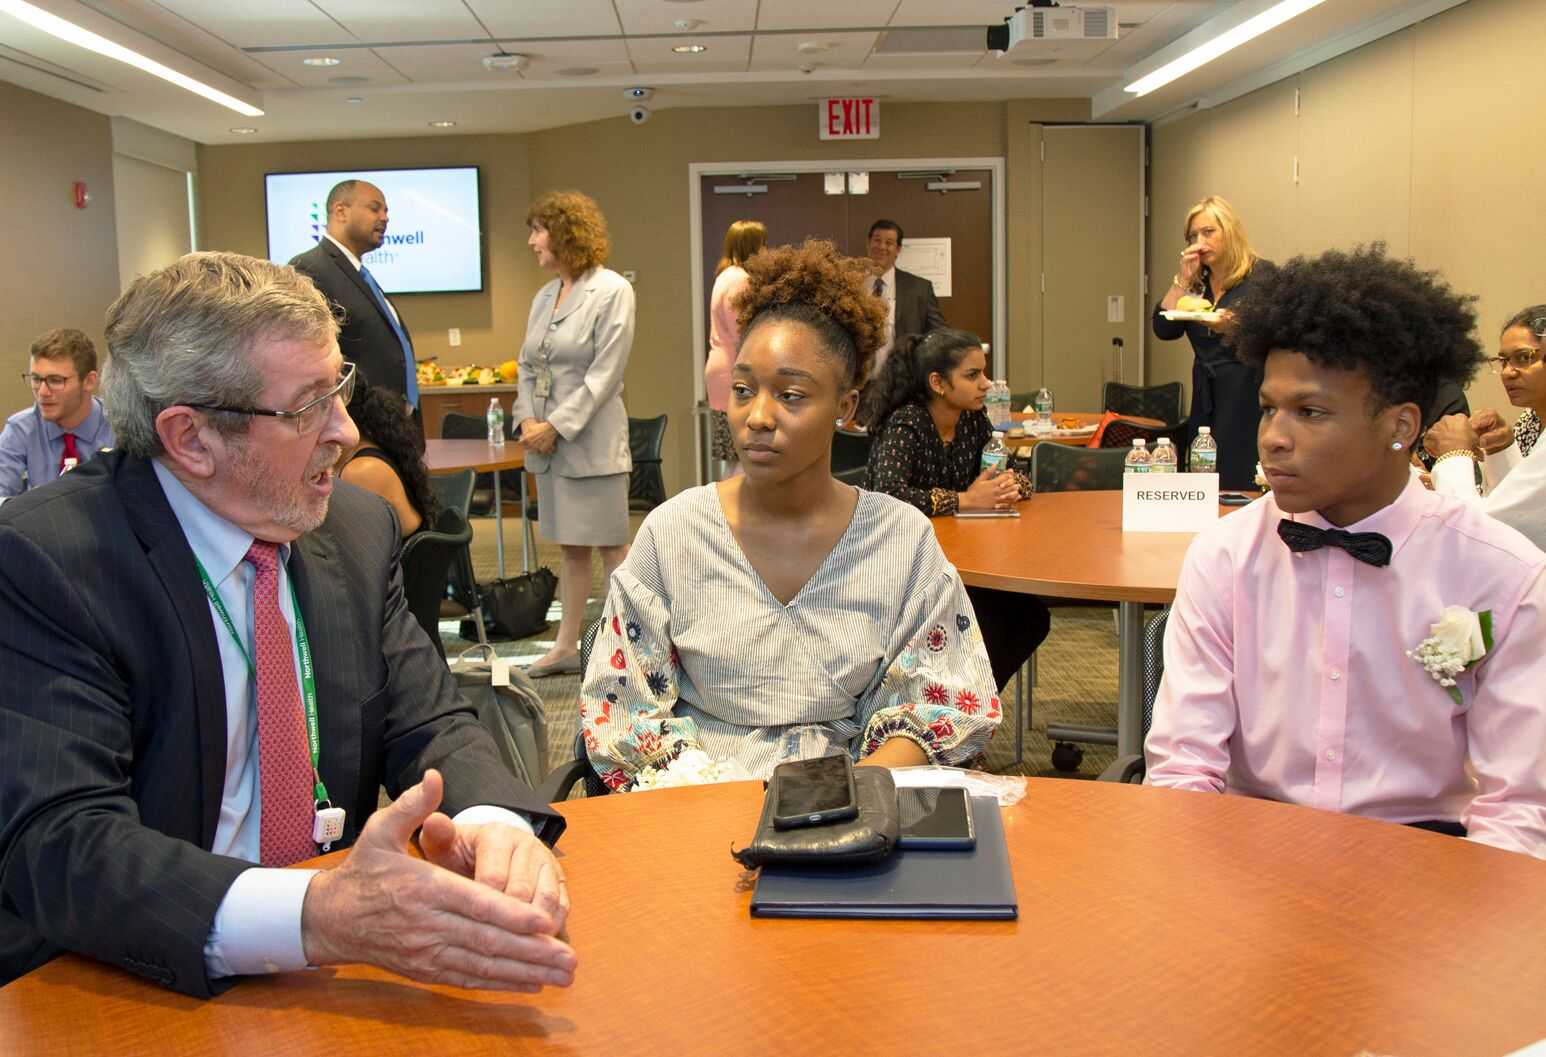 From left: Michael J. Dowling, president and CEO of Northwell Health, speaking with STEM scholarship recipients Micaela Harmon and Solomon Richards.